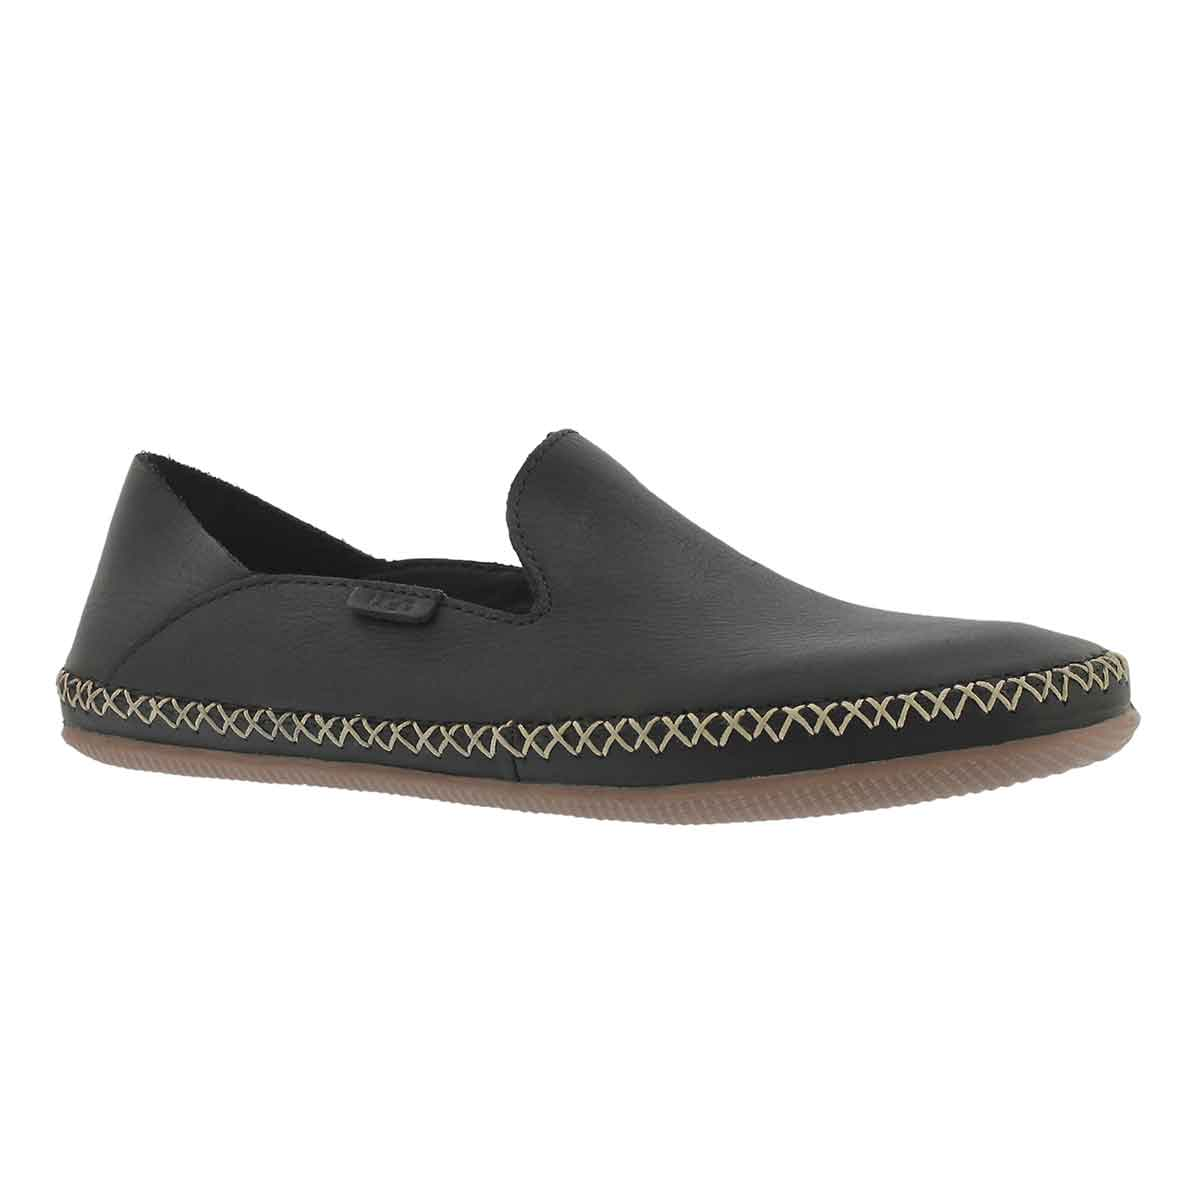 Women's ELODIE black casual slip on shoes